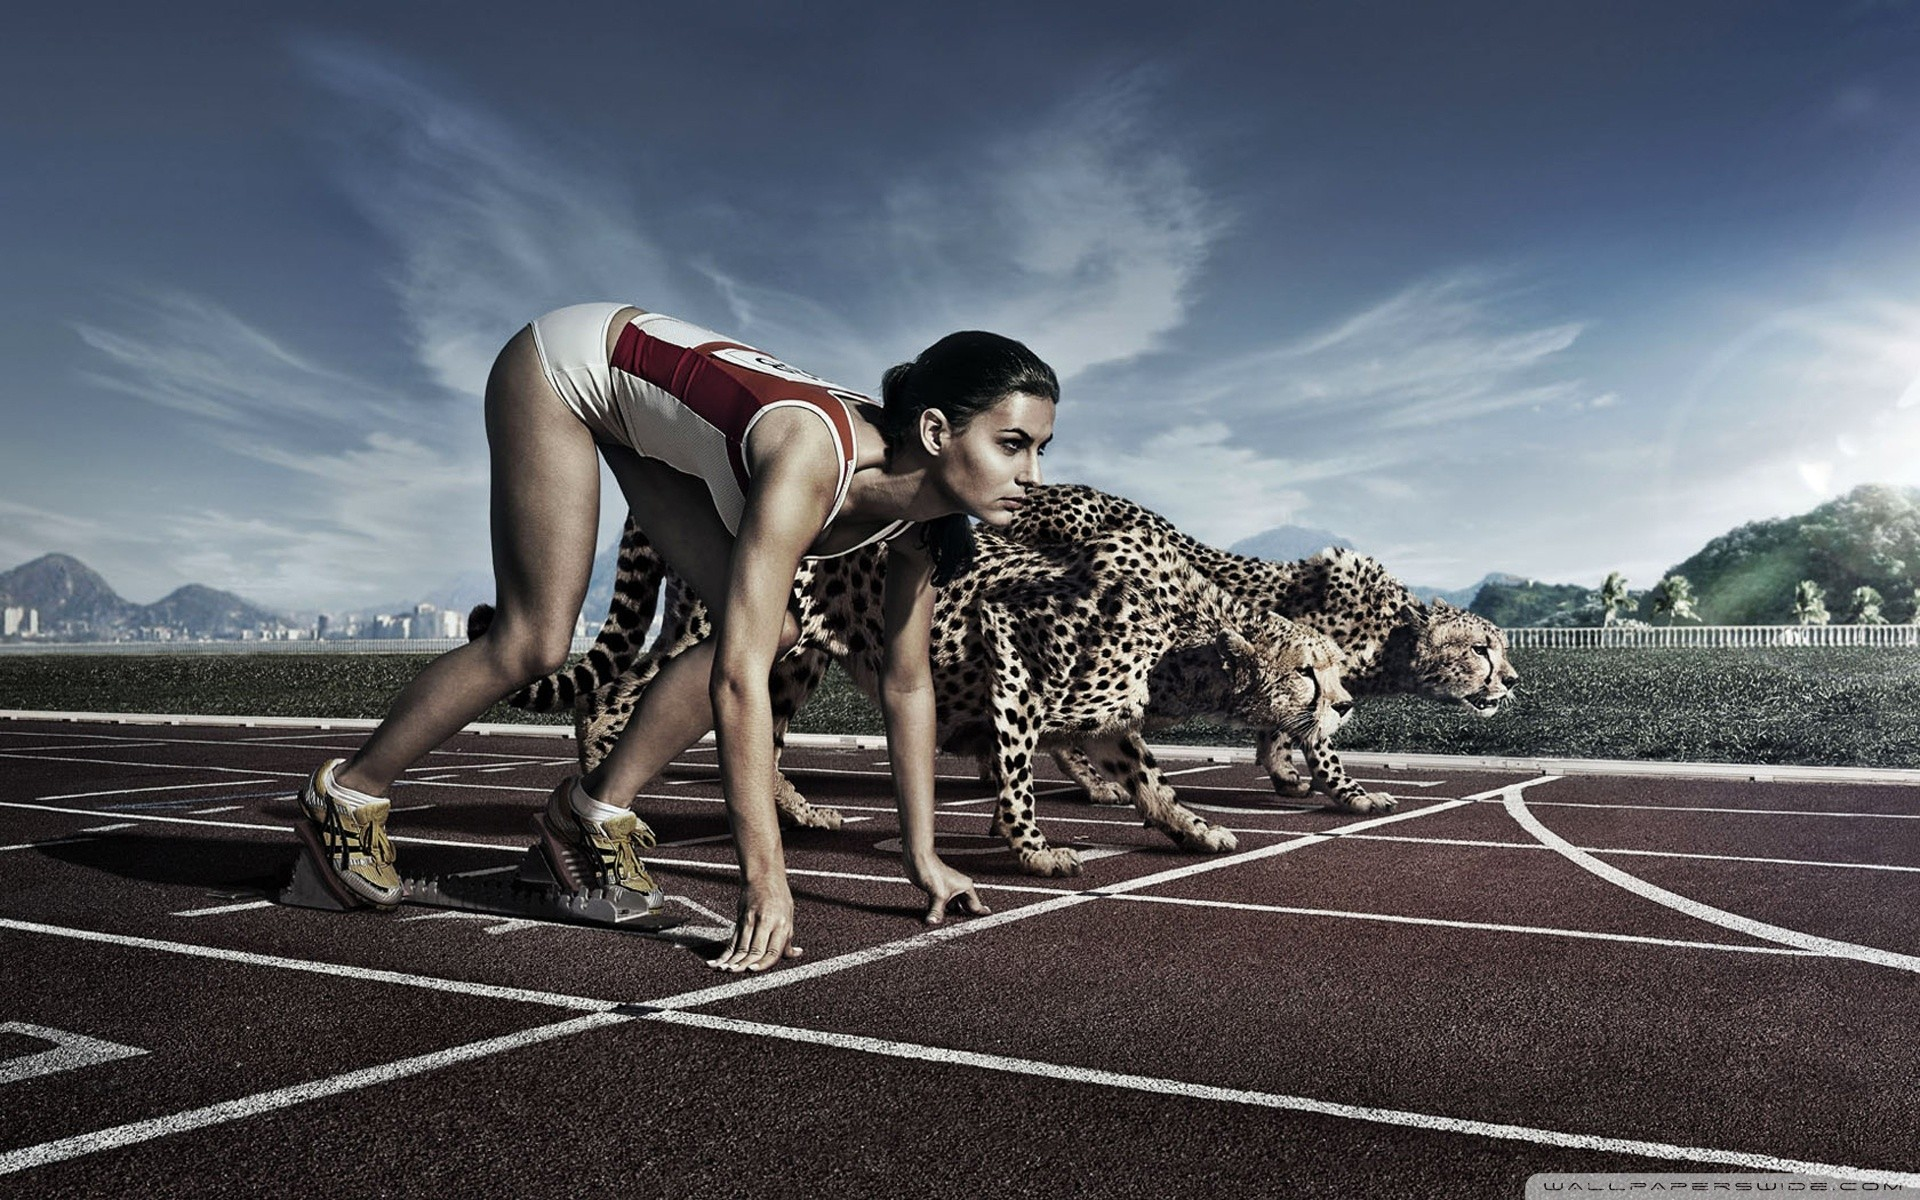 cheetahs running track races HD Wallpaper